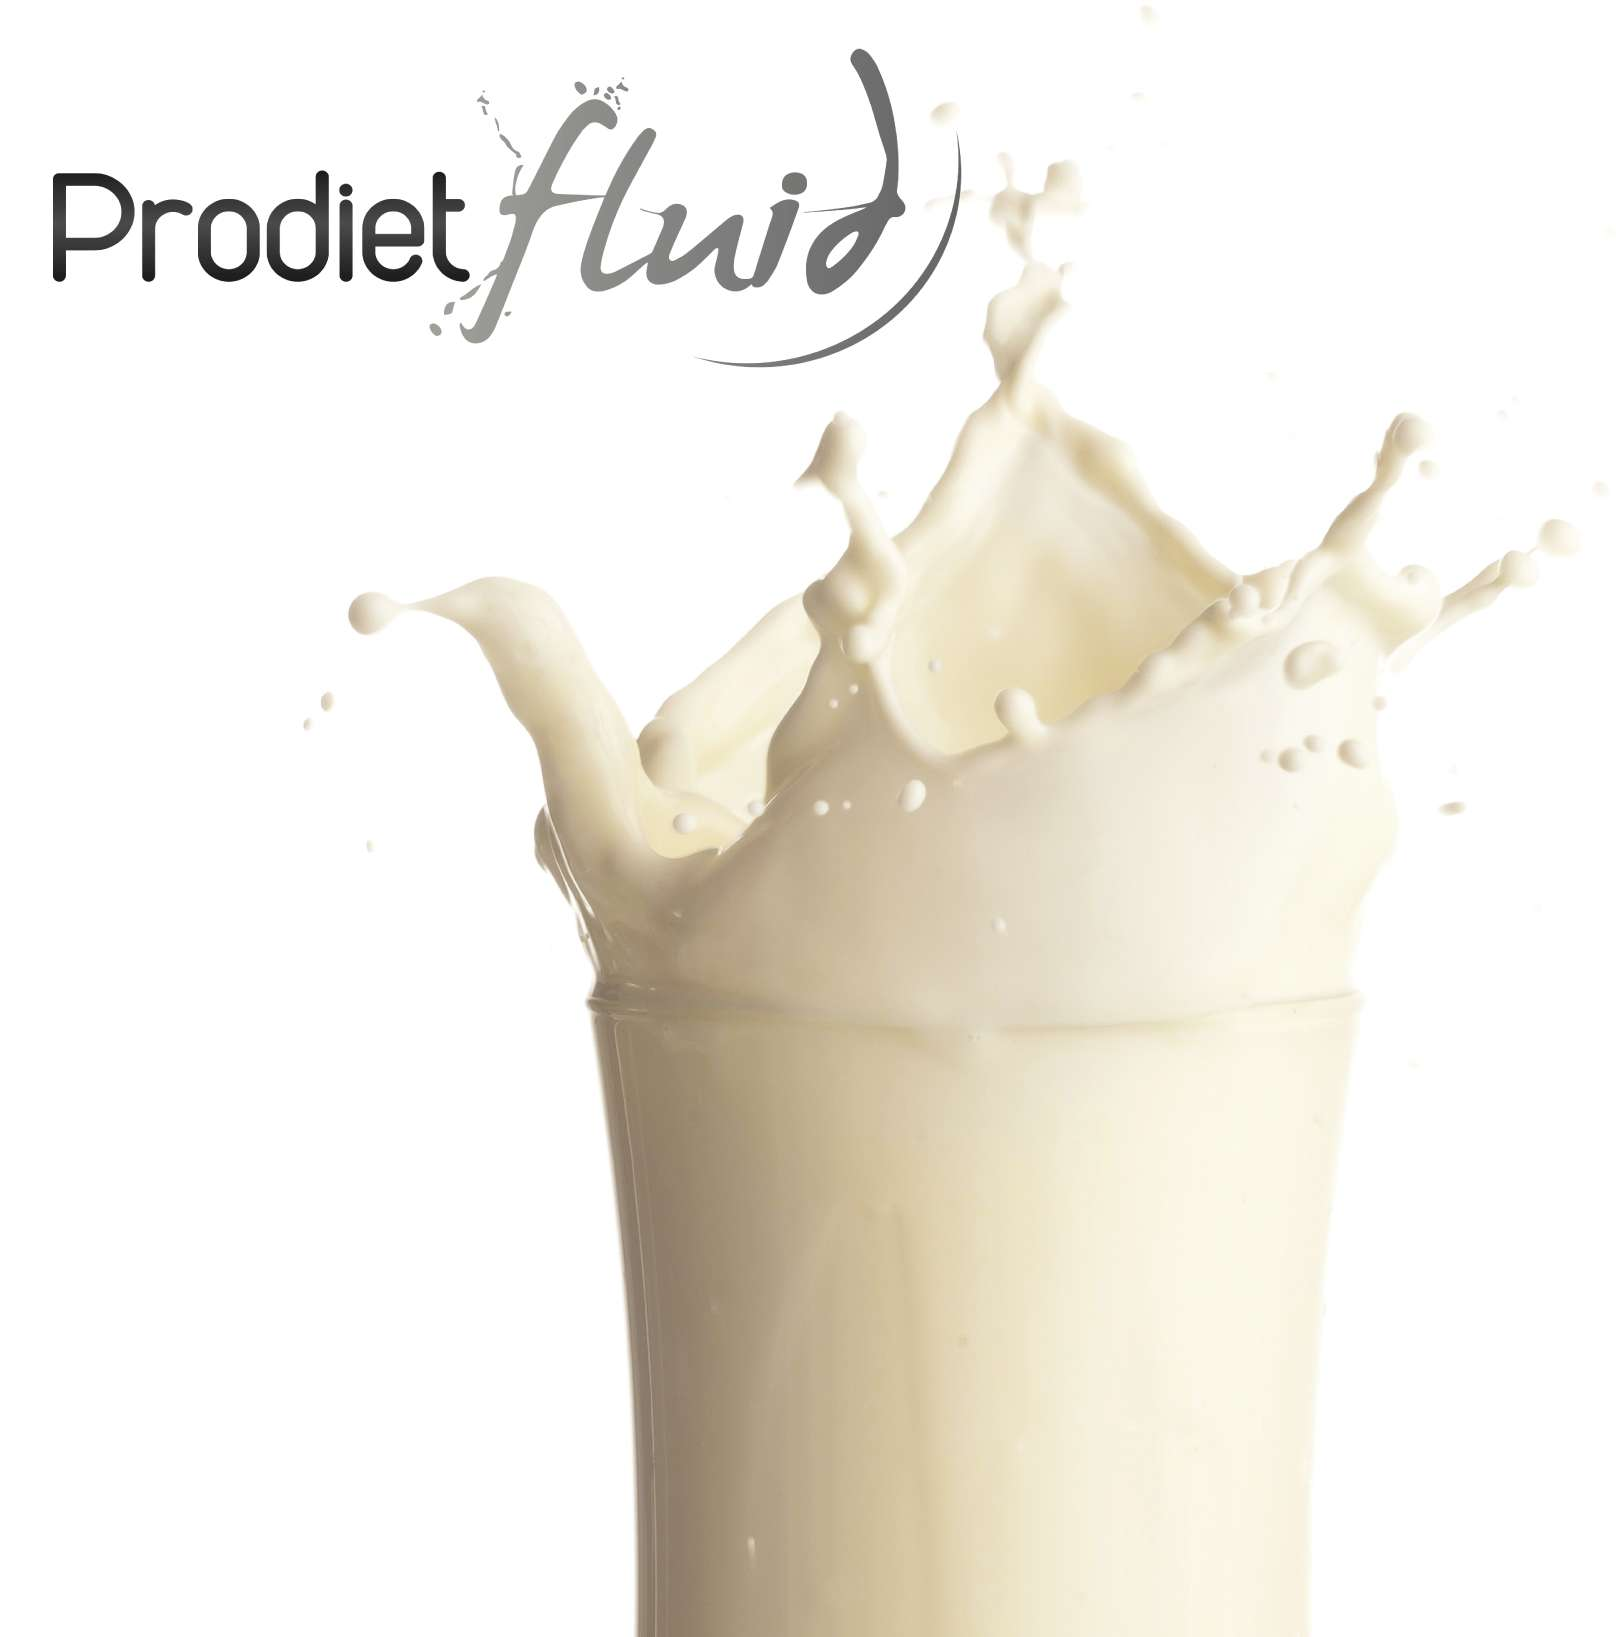 prodiet fluid dairy ingredients